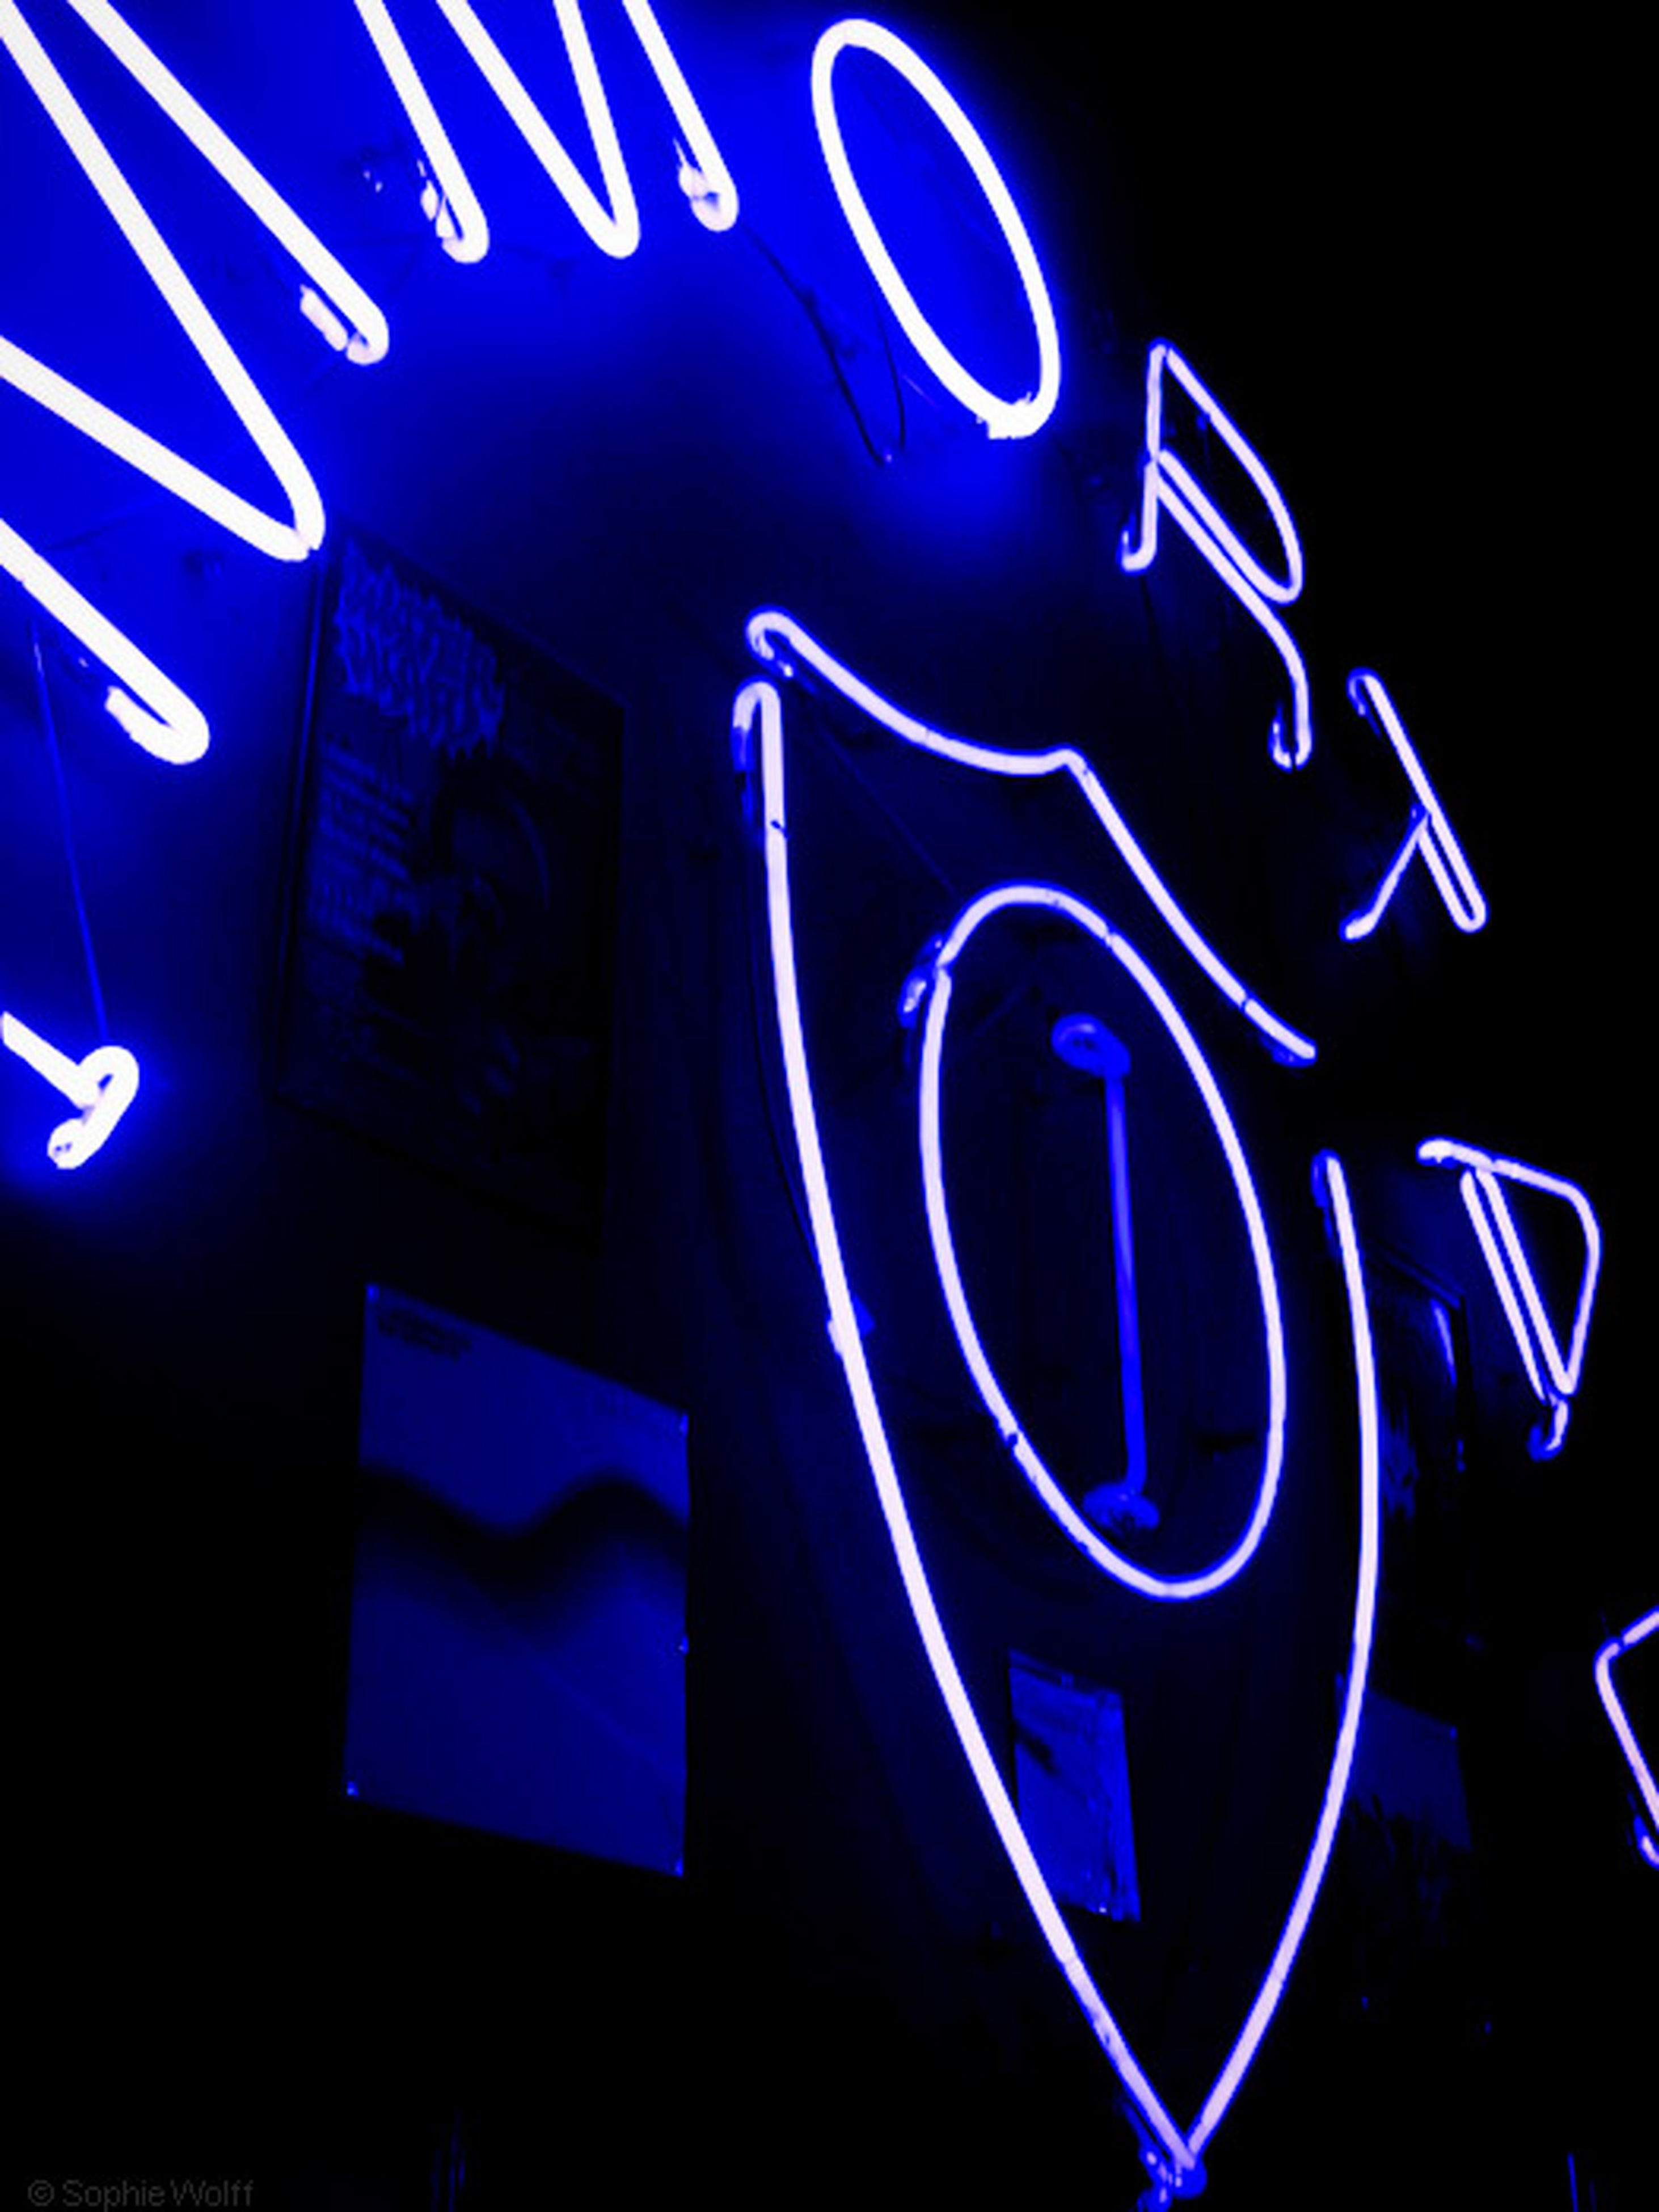 illuminated, text, communication, western script, night, indoors, blue, neon, capital letter, close-up, art, creativity, sign, art and craft, light - natural phenomenon, pattern, multi colored, guidance, no people, glowing